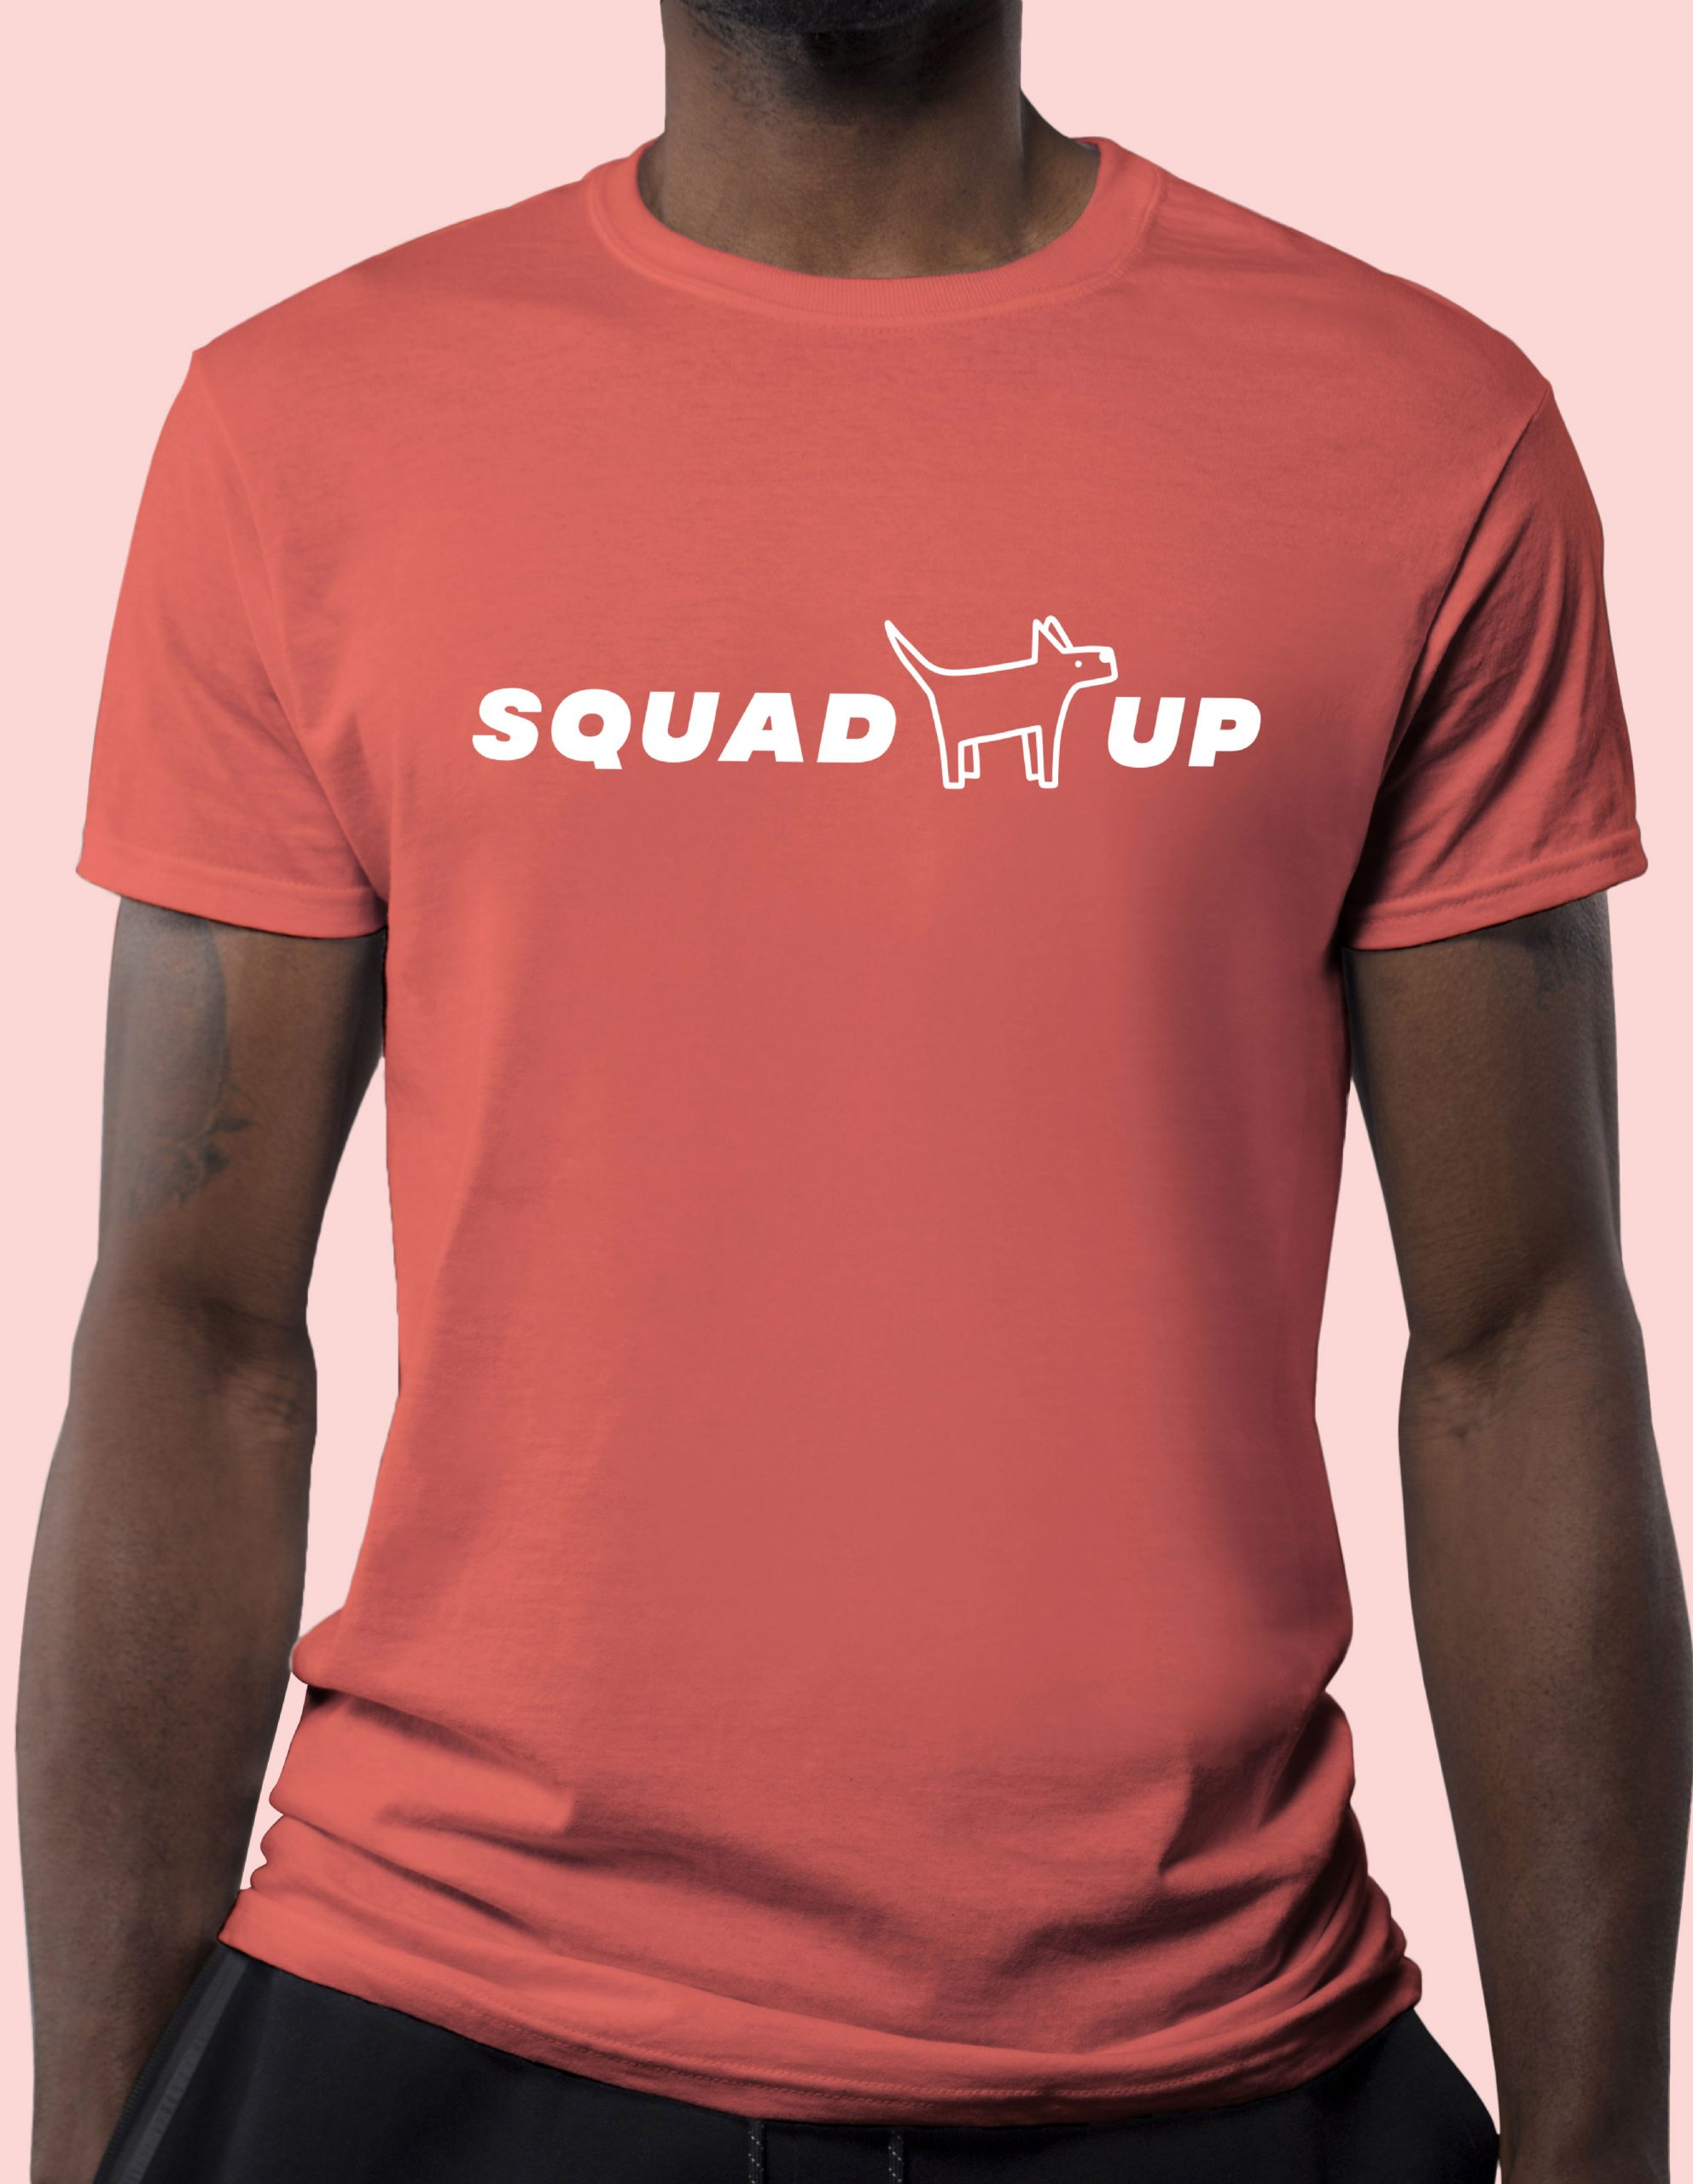 squad up red tee shirt